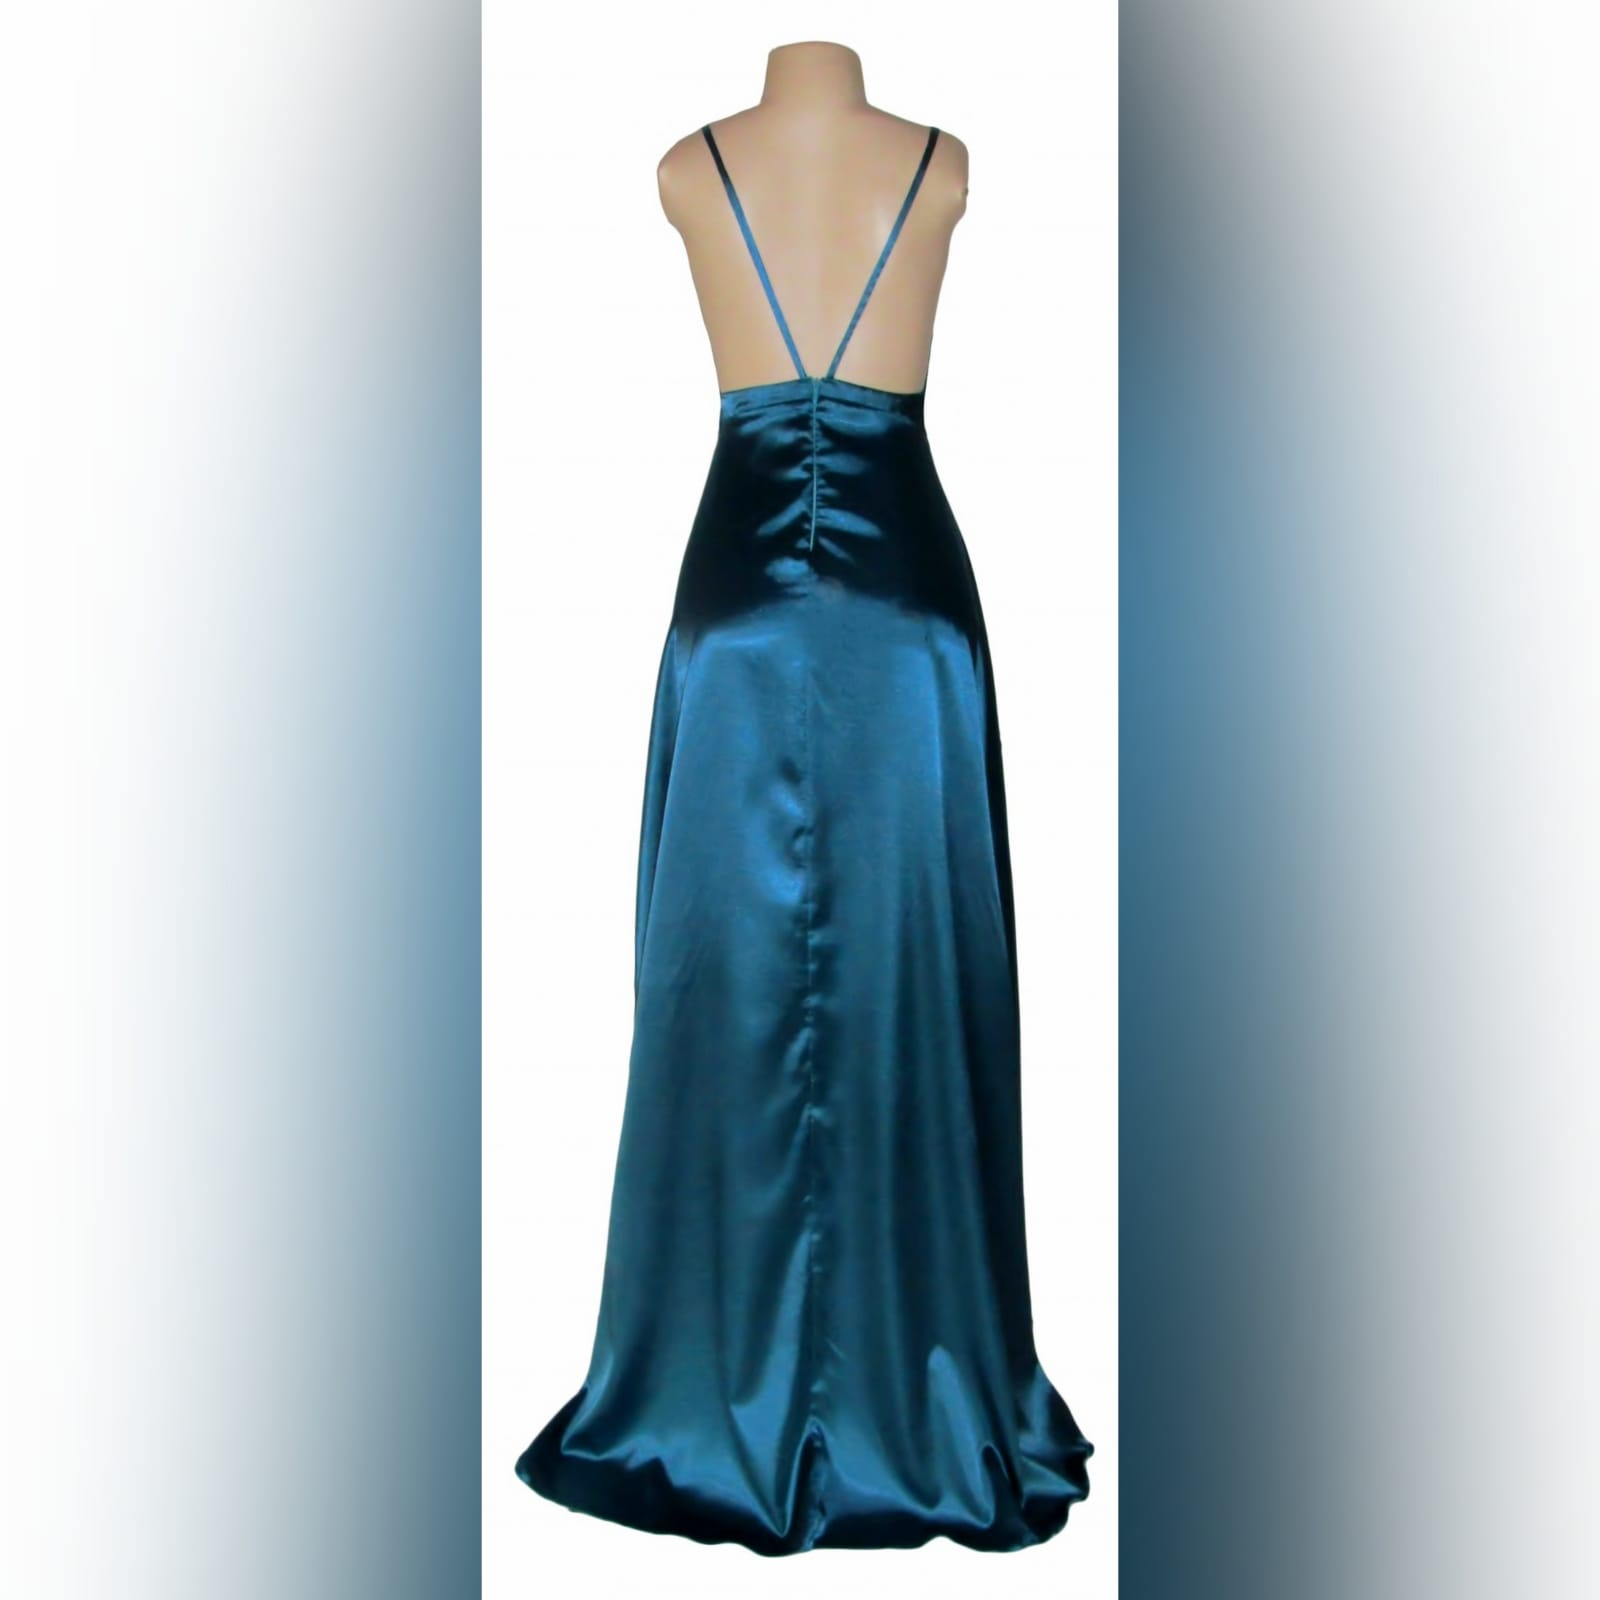 Teal long satin evening dress 3 teal long satin evening dress with a crossed bust neckline, backless design with 2 thin straps. With a small train.